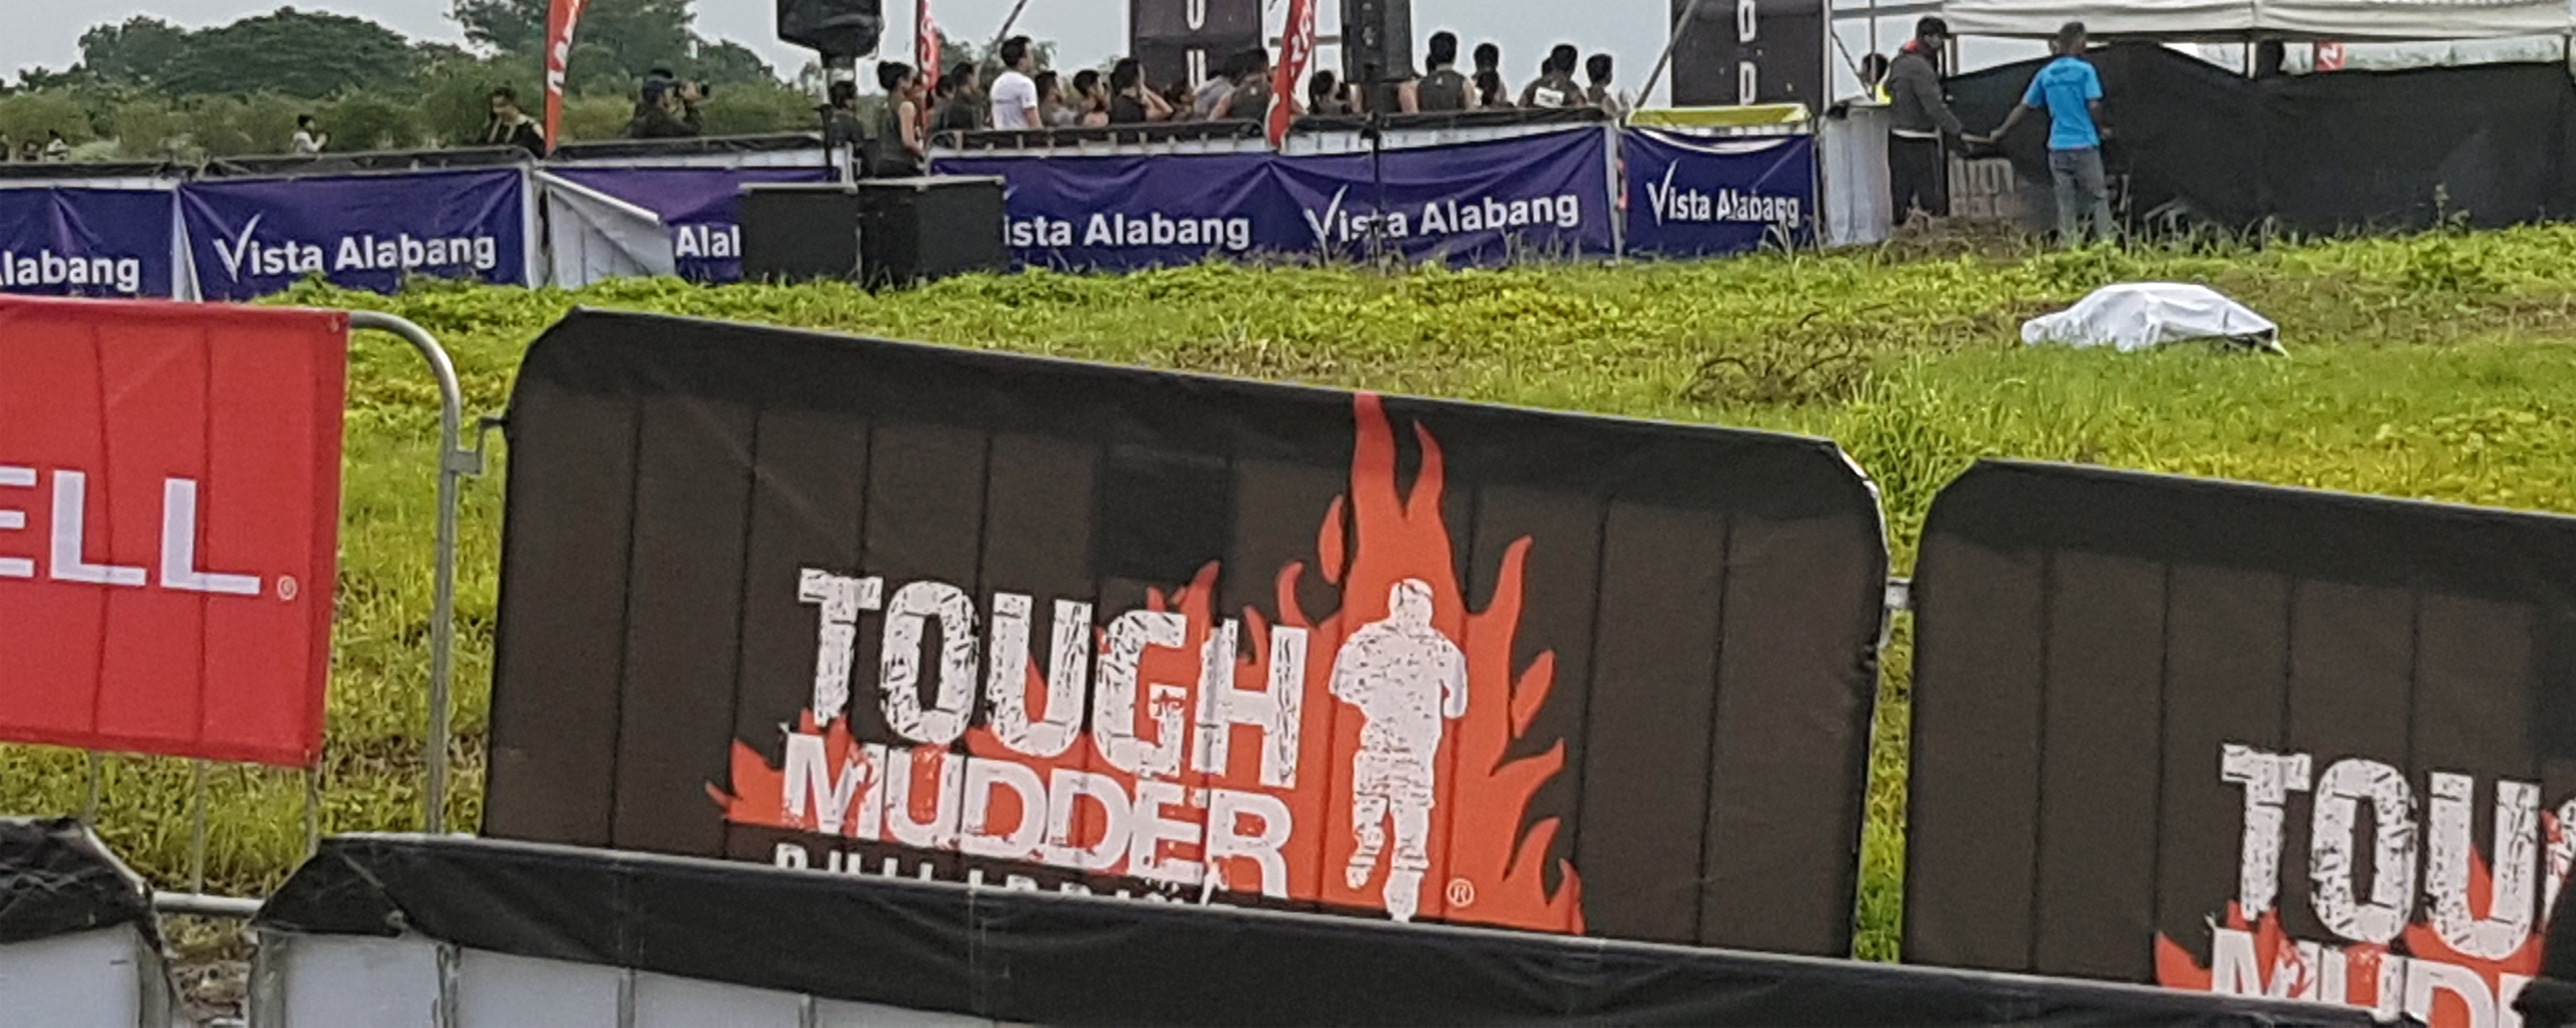 Open Access BPO employees tough it out on 1st Tough Mudder PH